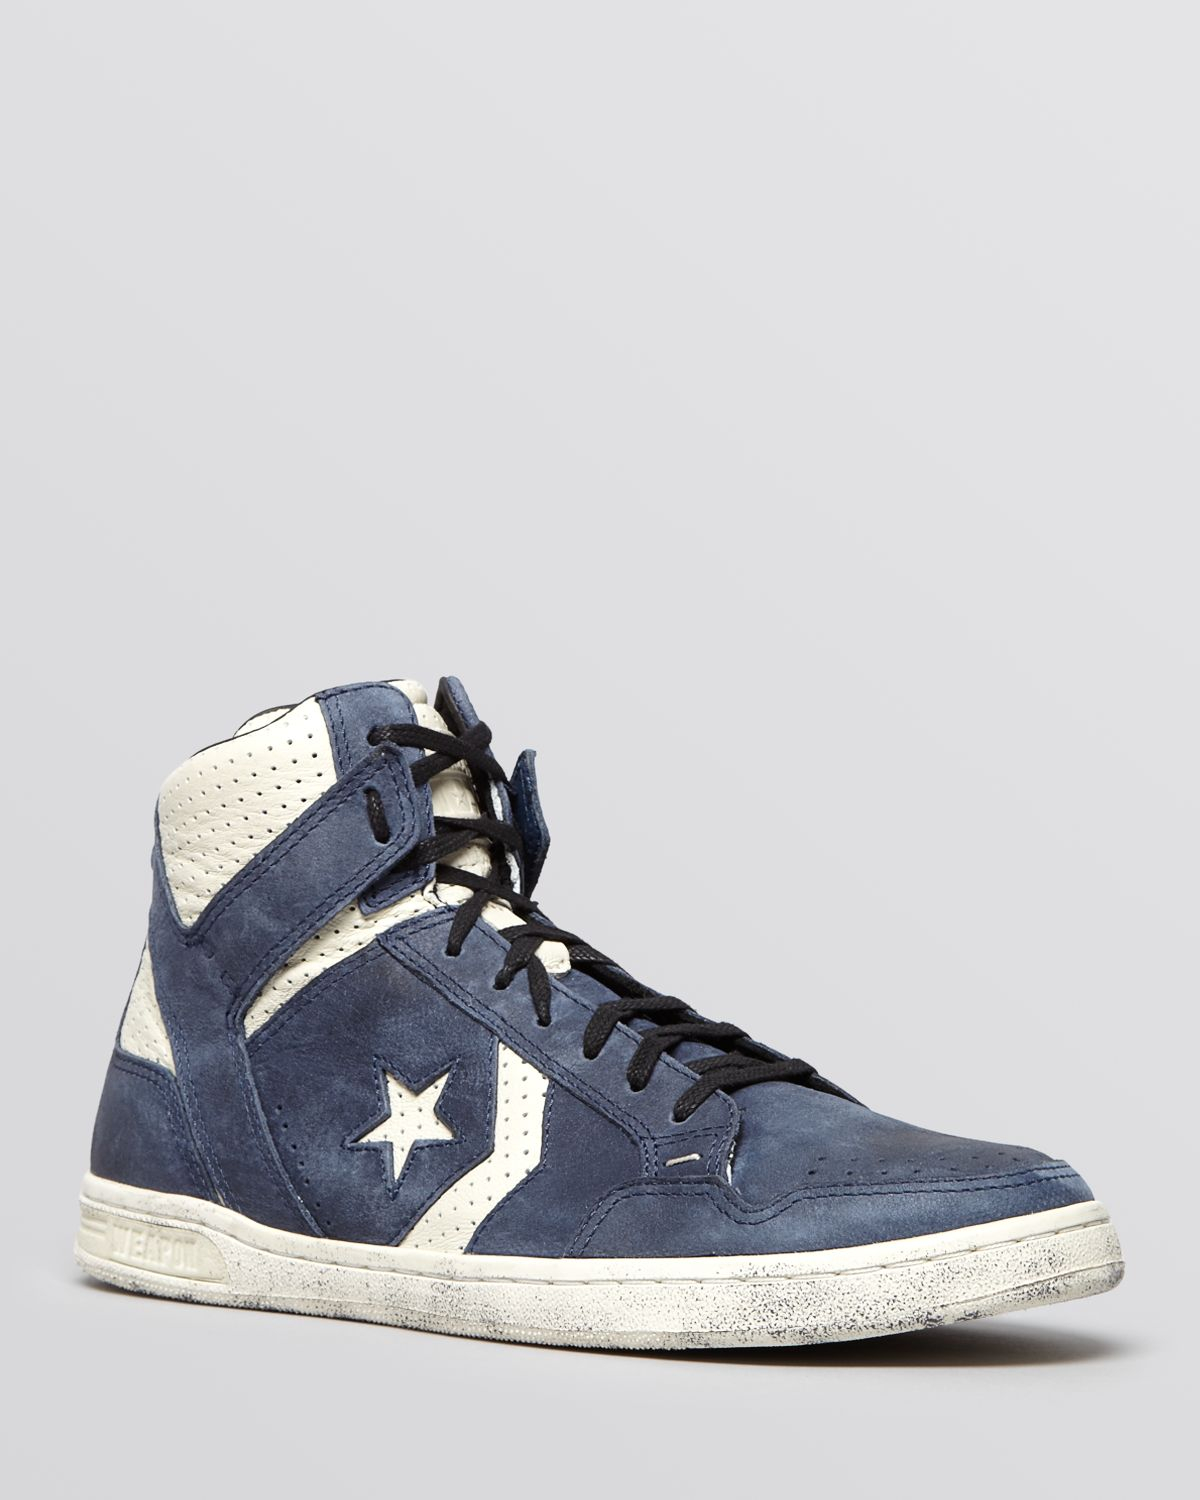 a6fb42ab849d ... black leather ctas ii high top sneakers 115ae b2e9d  sweden gallery.  previously sold at bloomingdales mens john varvatos converse 8f471 d71c7